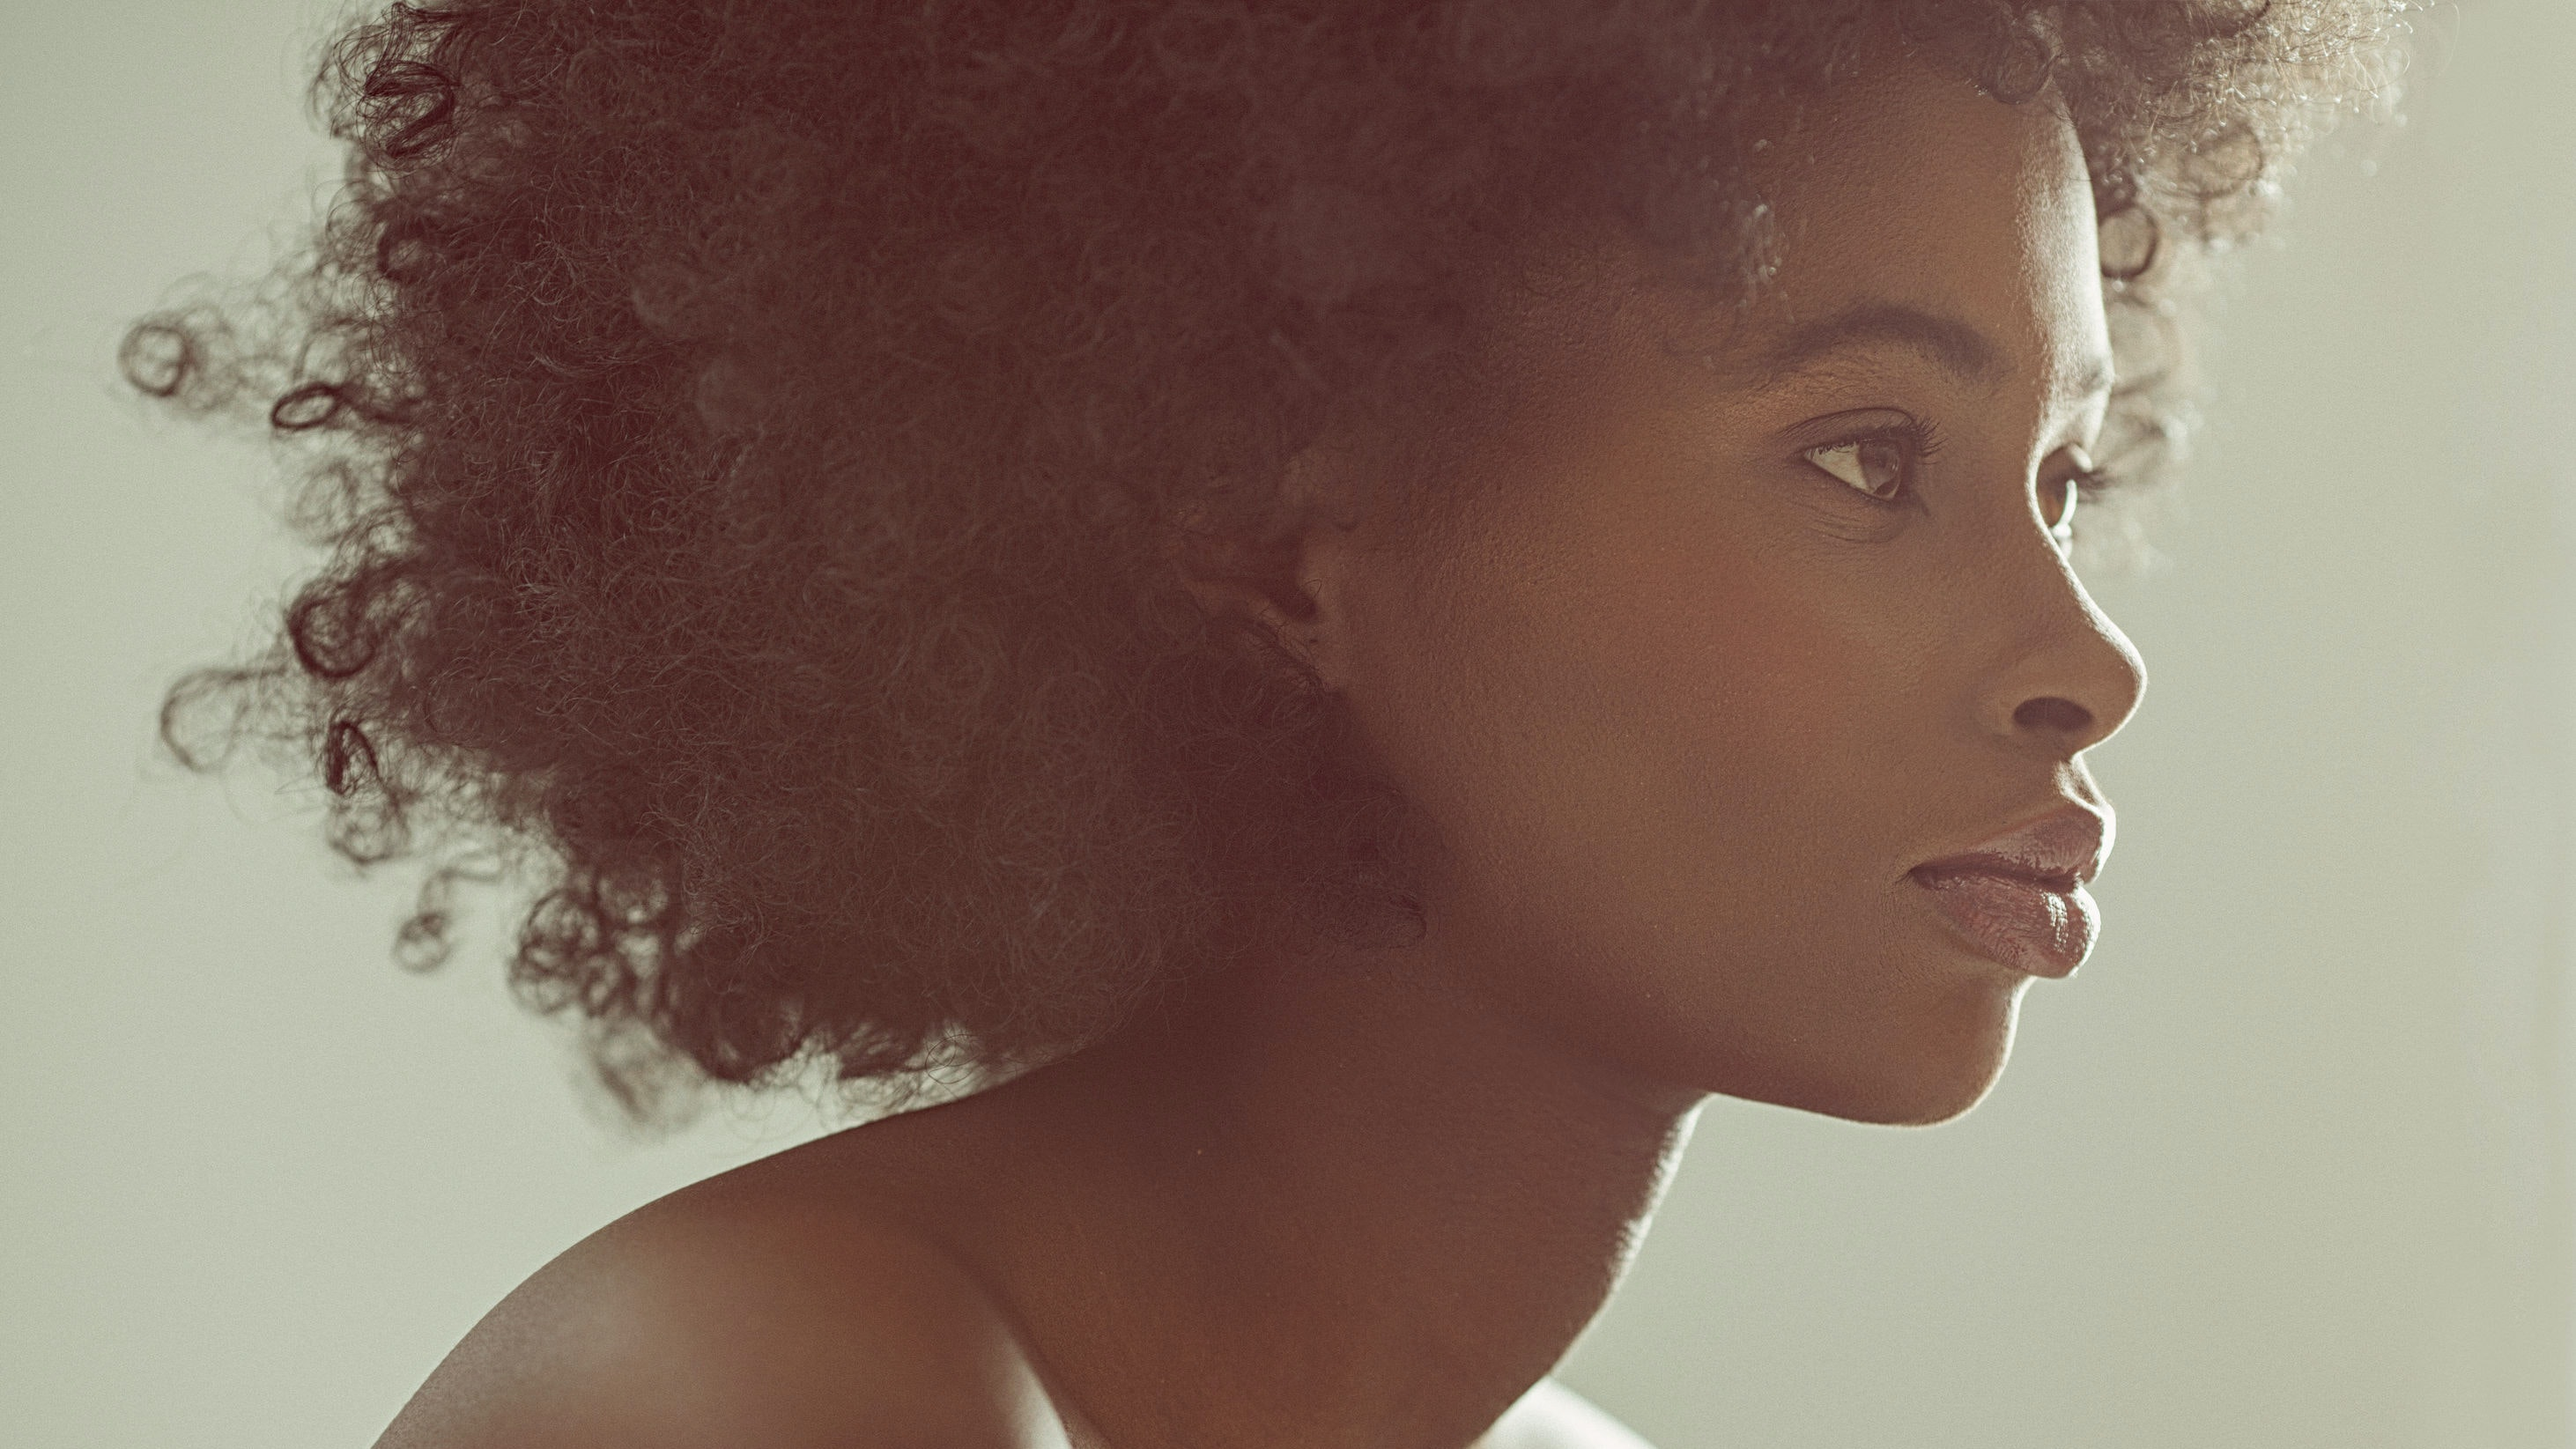 8 Essential Tips For Handling Curls and Natural Textures as You Age